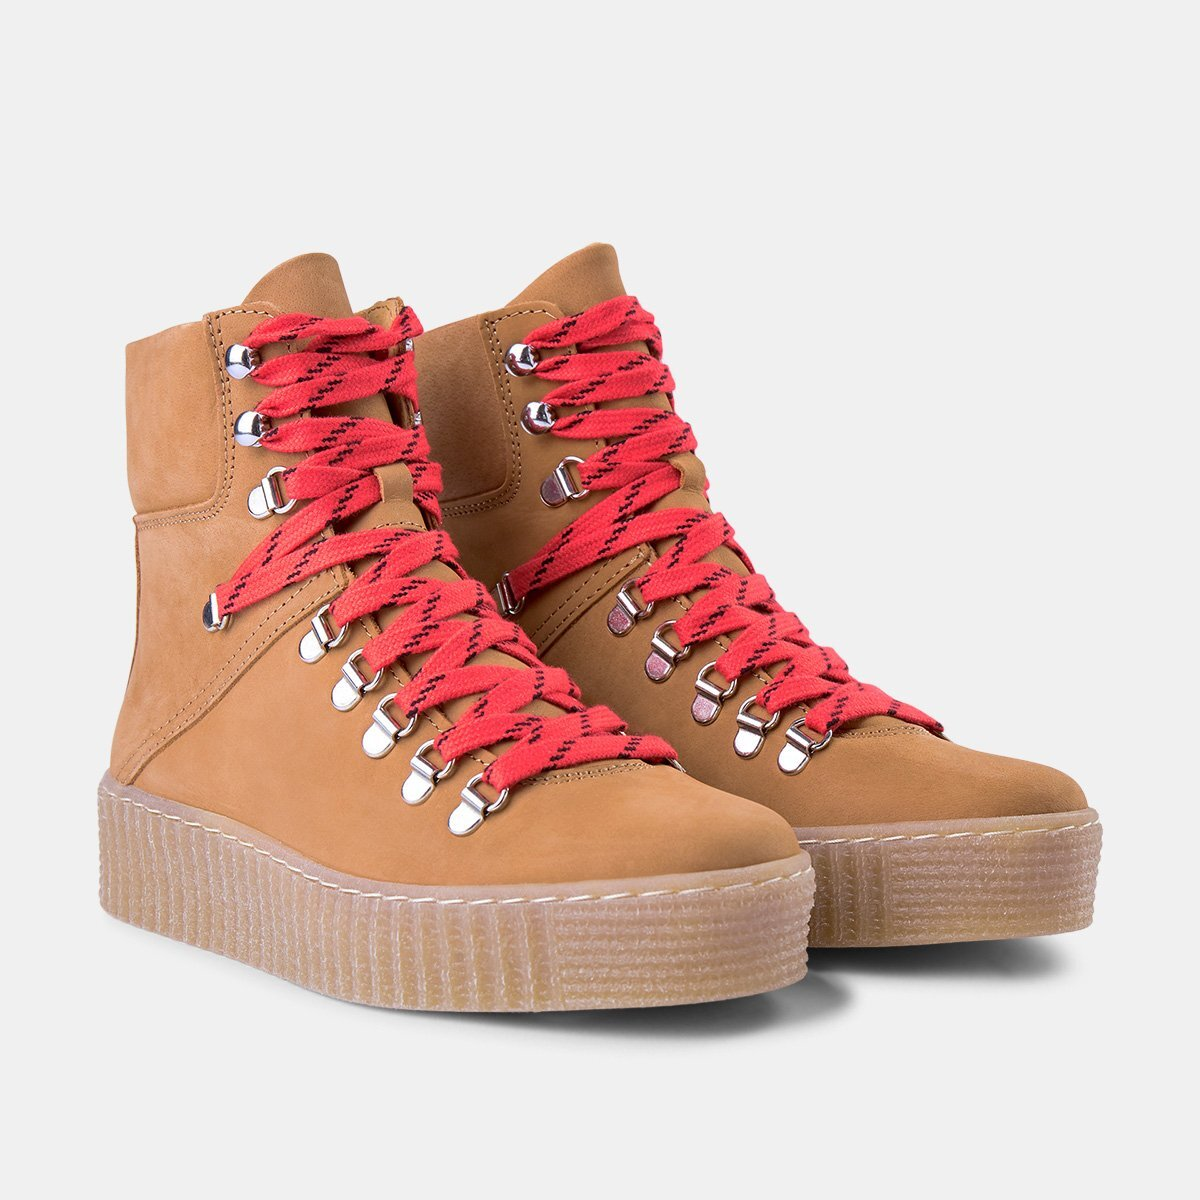 Agda_Nubuck_Lace-up_Boot-Boots-STB1416-Tan.jpg